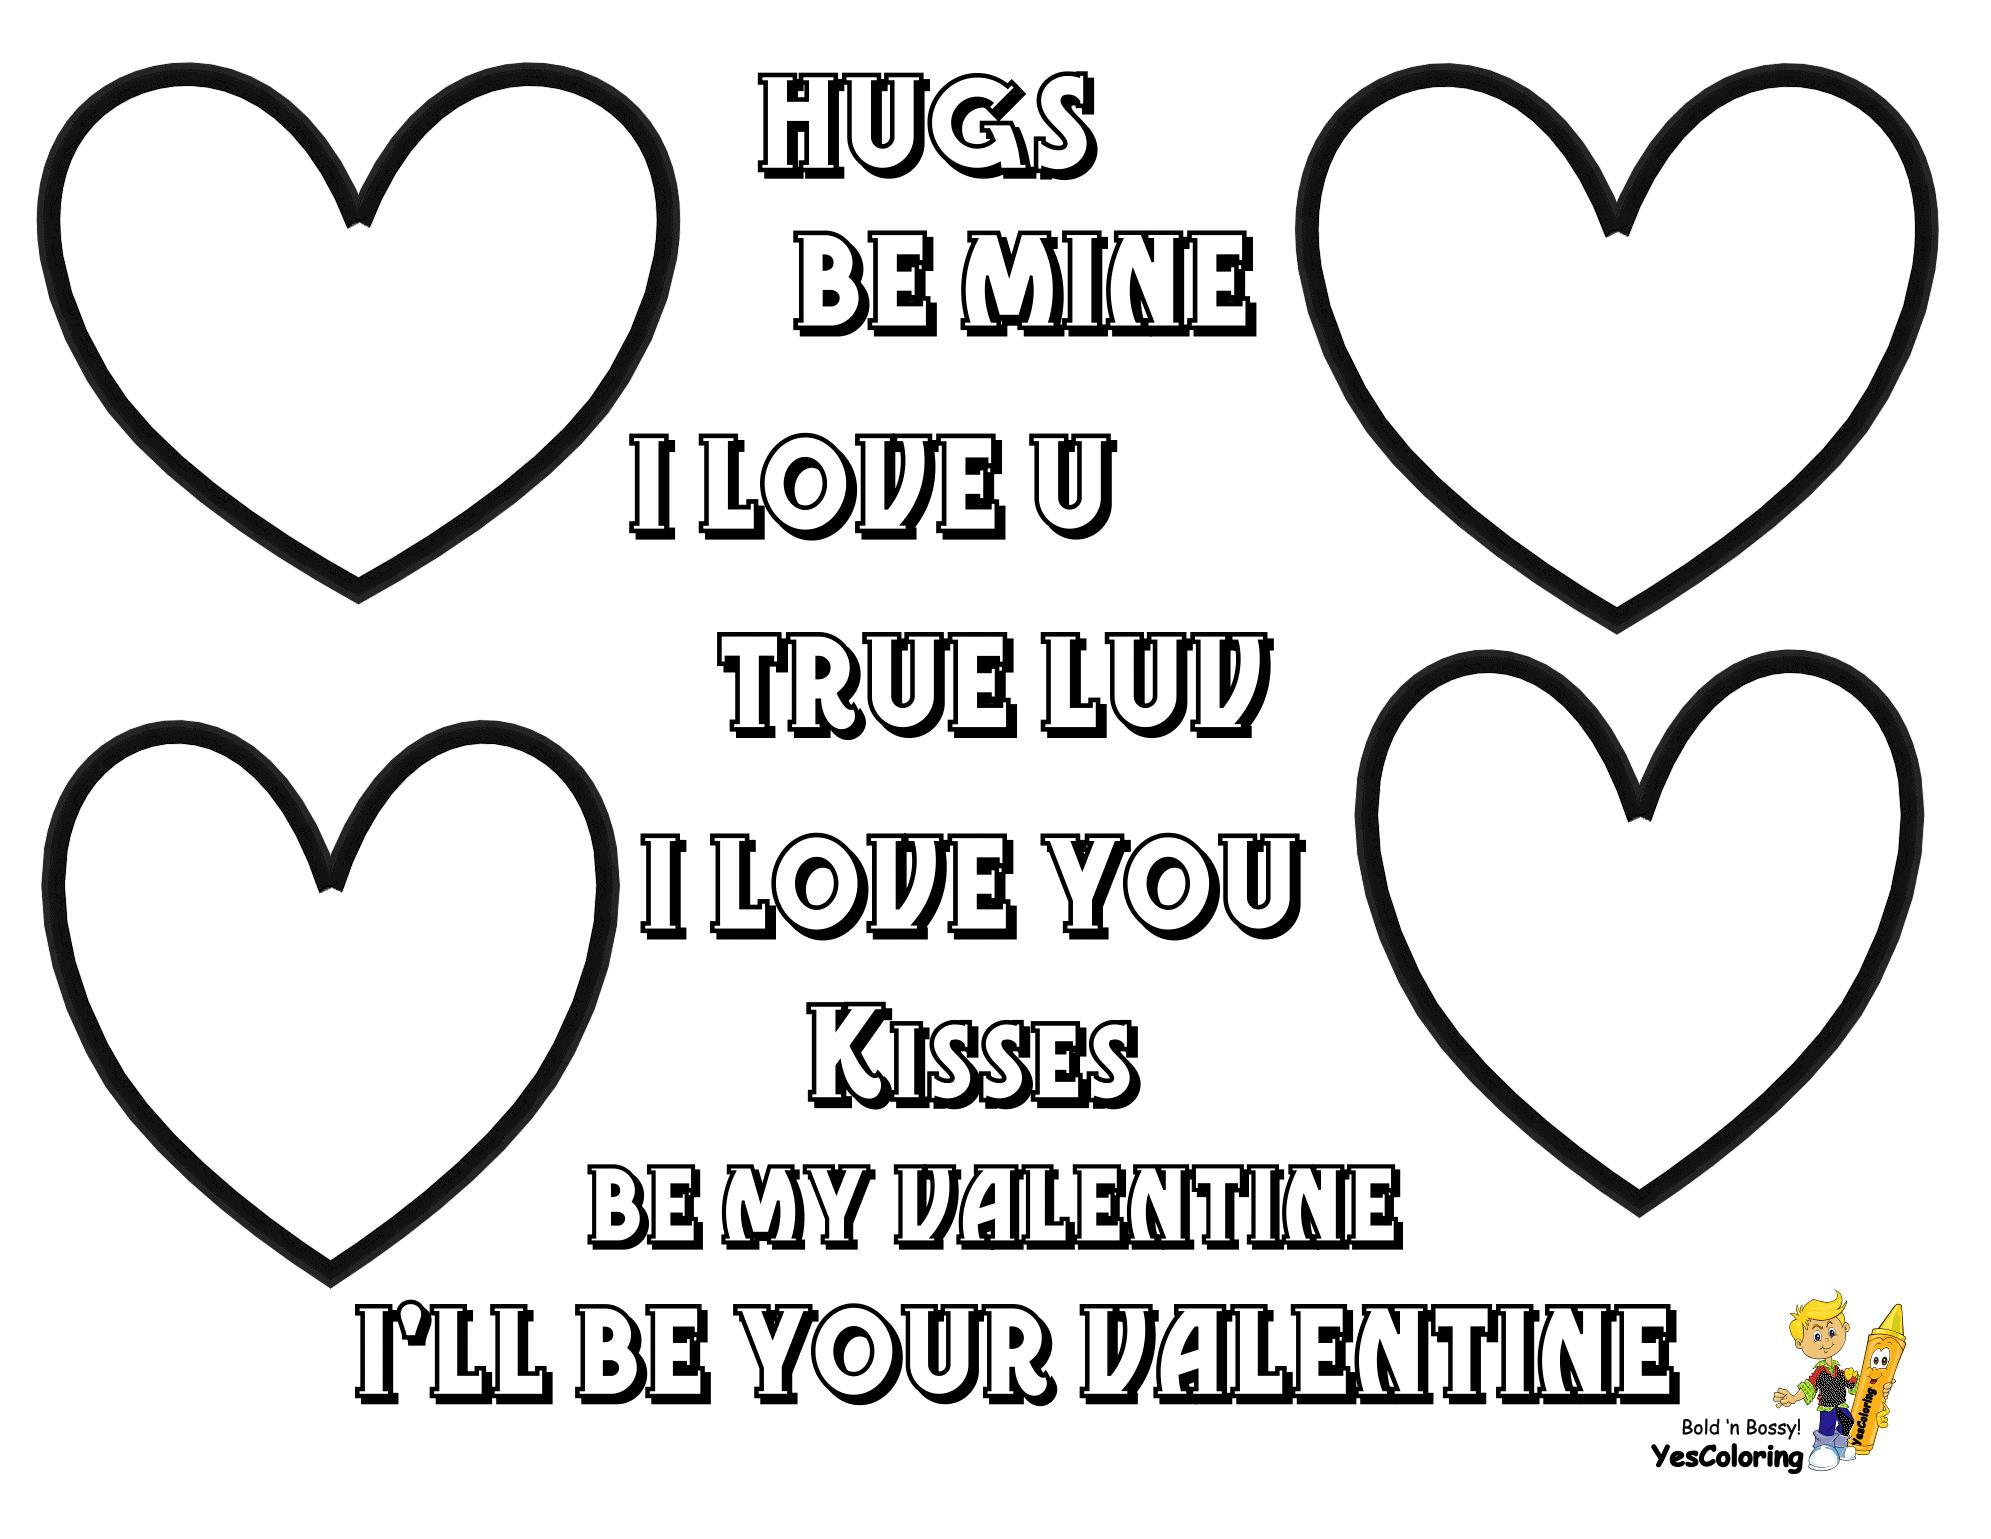 Print Out Valentines Quotes with Hearts at Yes Coloring